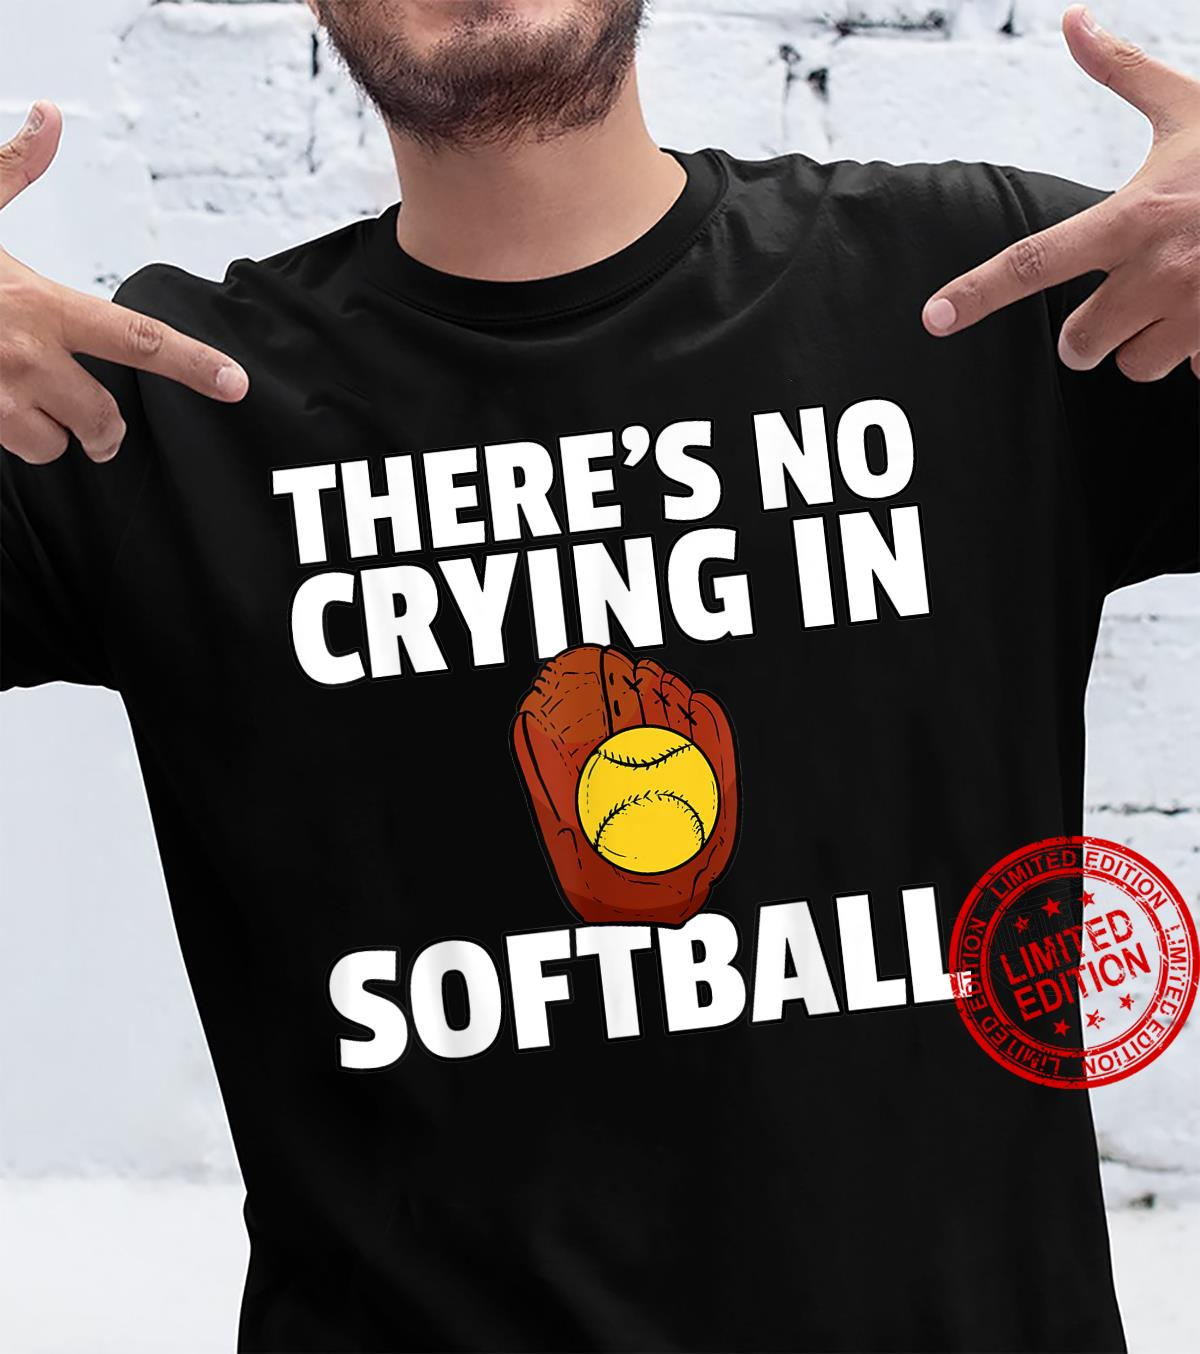 There's No Crying In Softball Girls Team Player Shirt